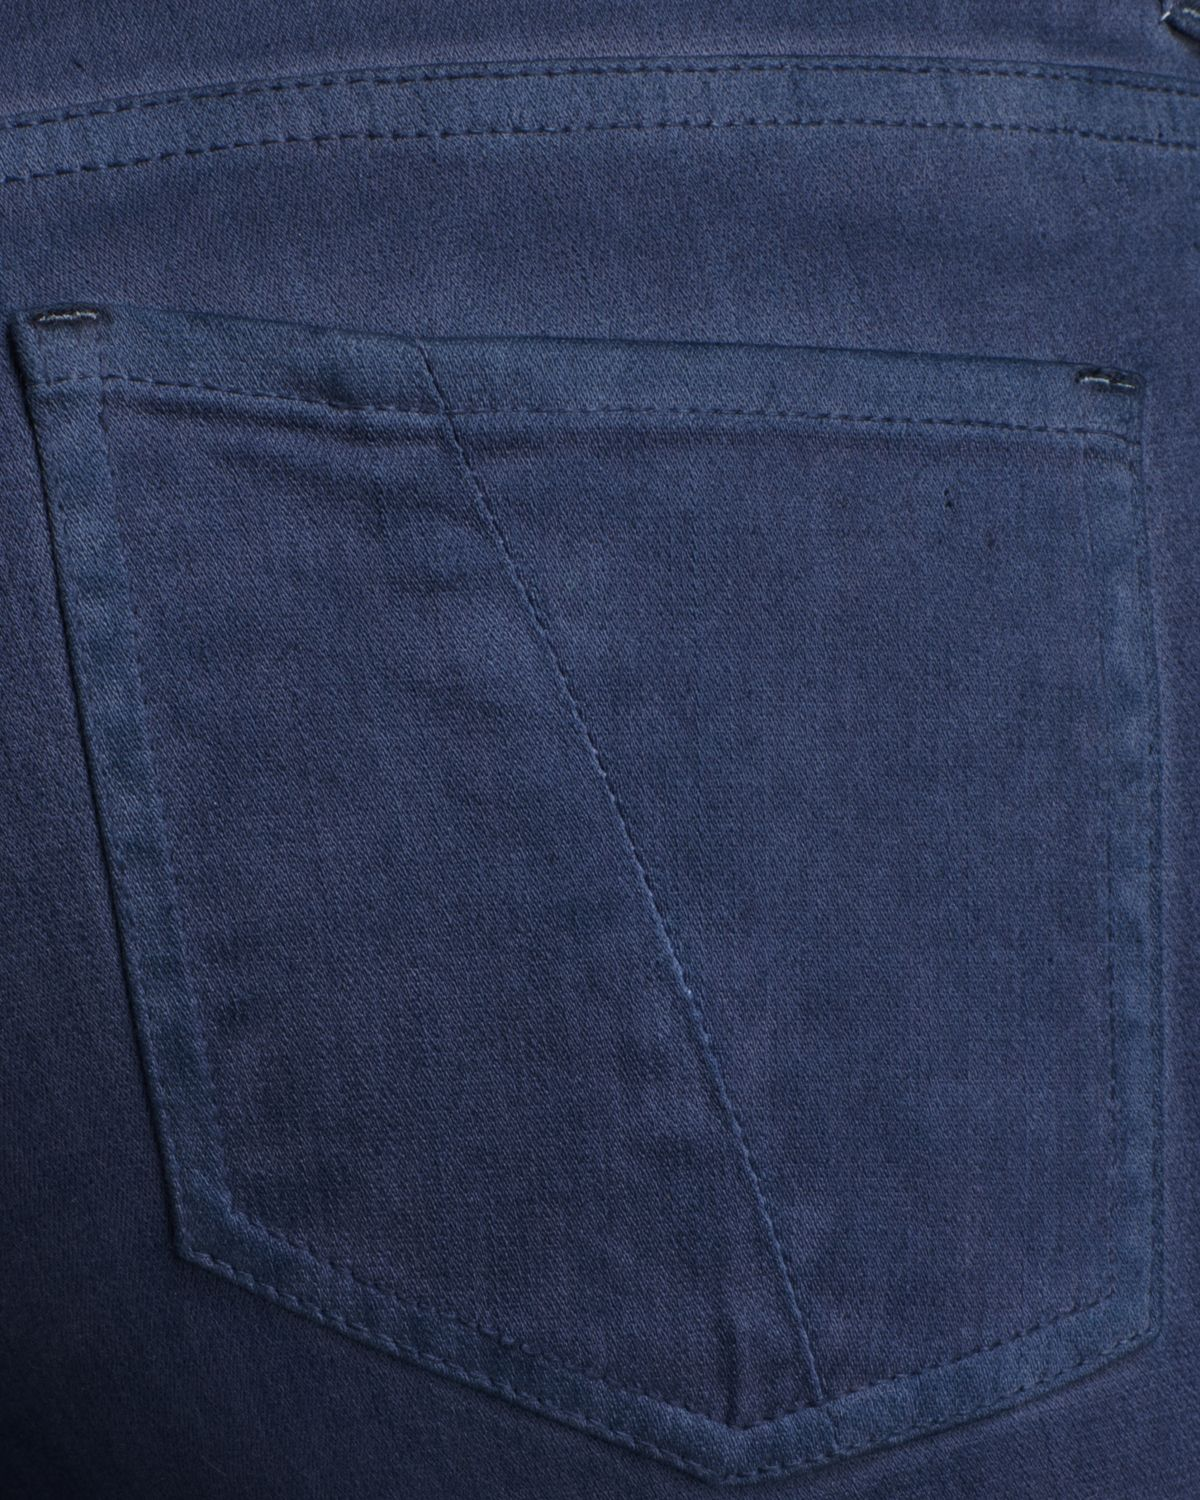 Cut25 by Yigal Azrouël Skinny Jeans Side Leather Panel in Blue